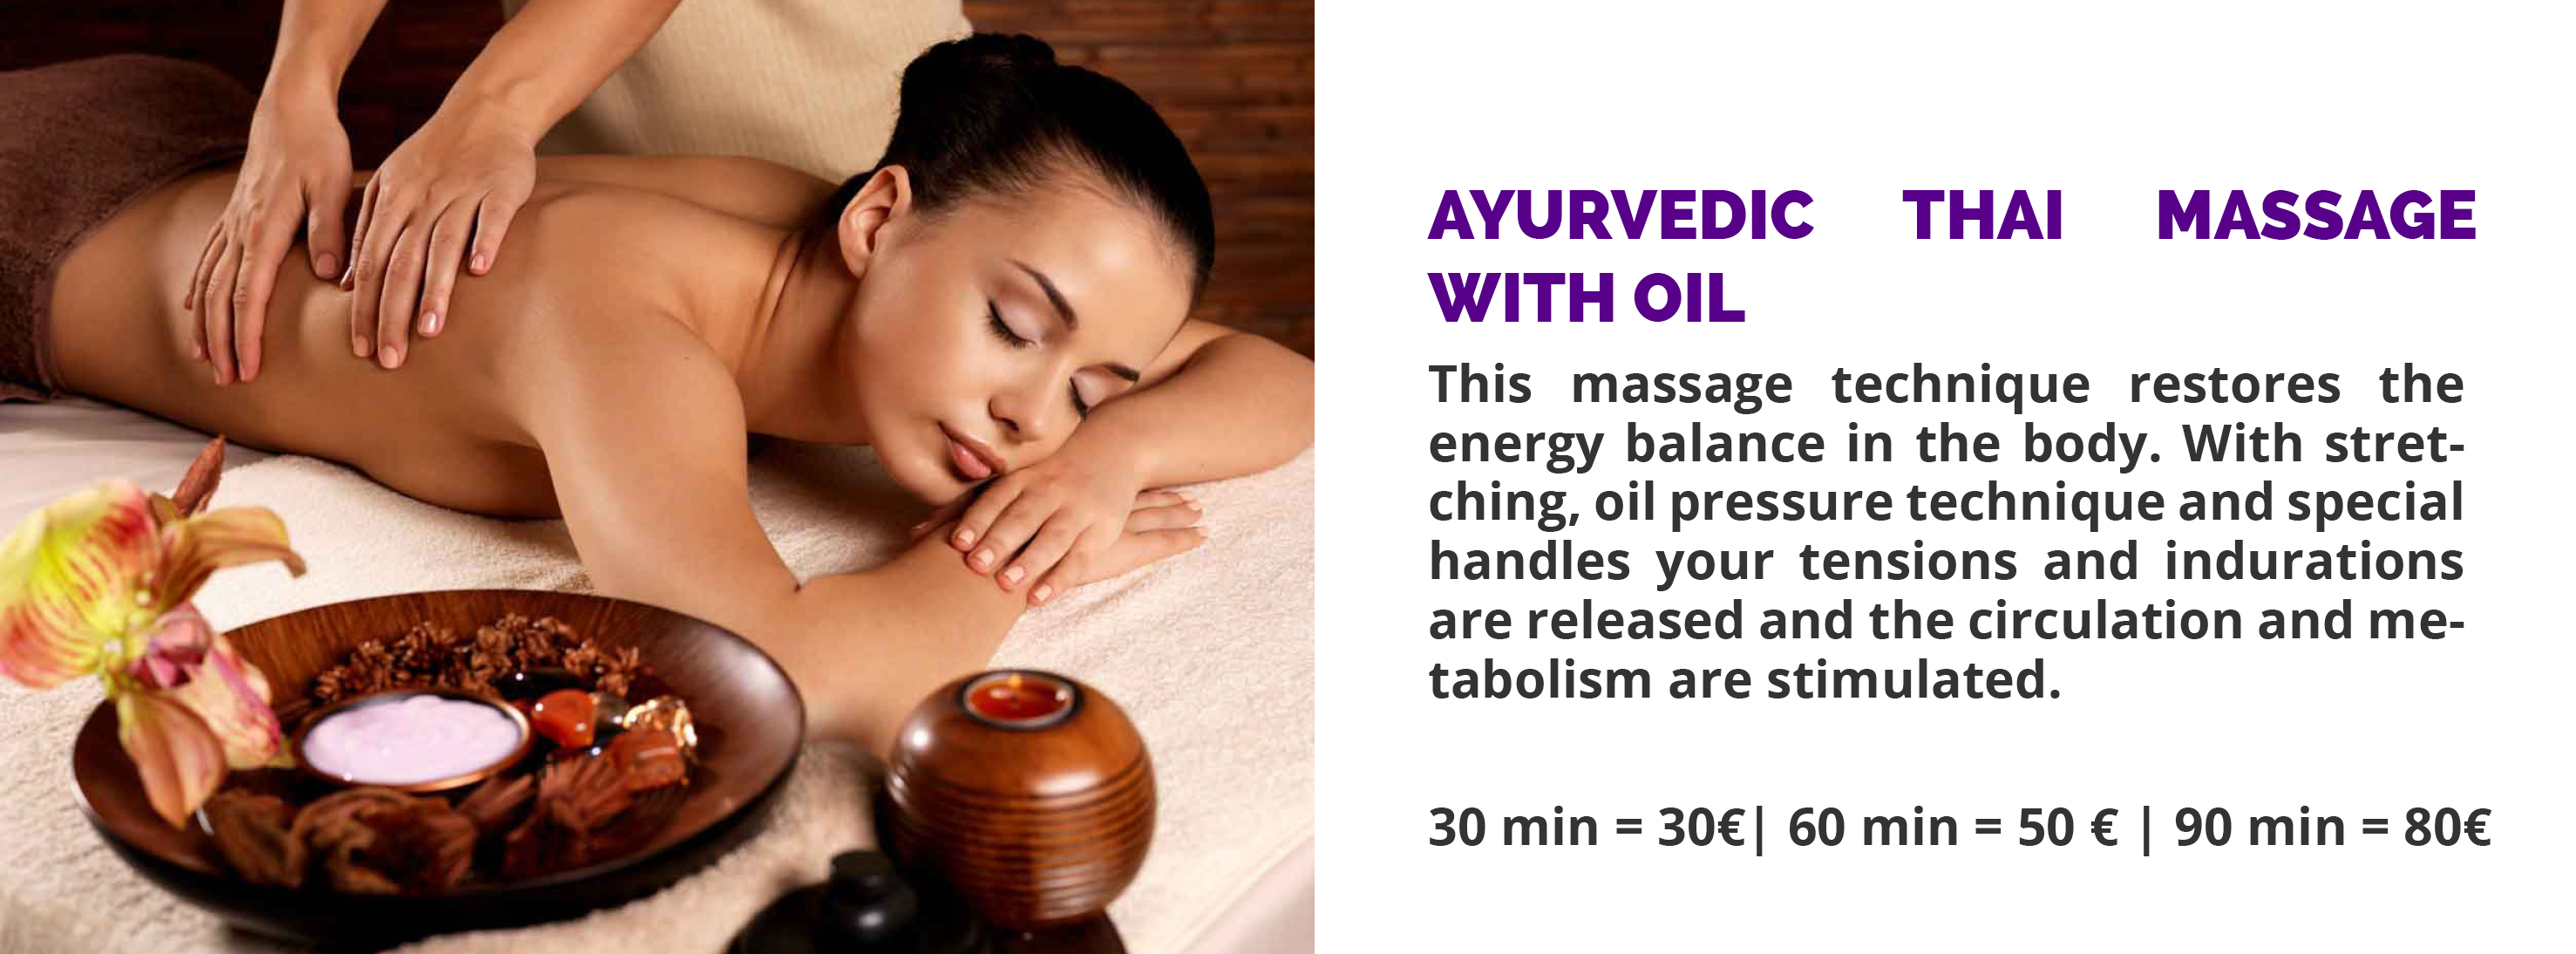 Ayurvedic Thai massage with oil Speyer